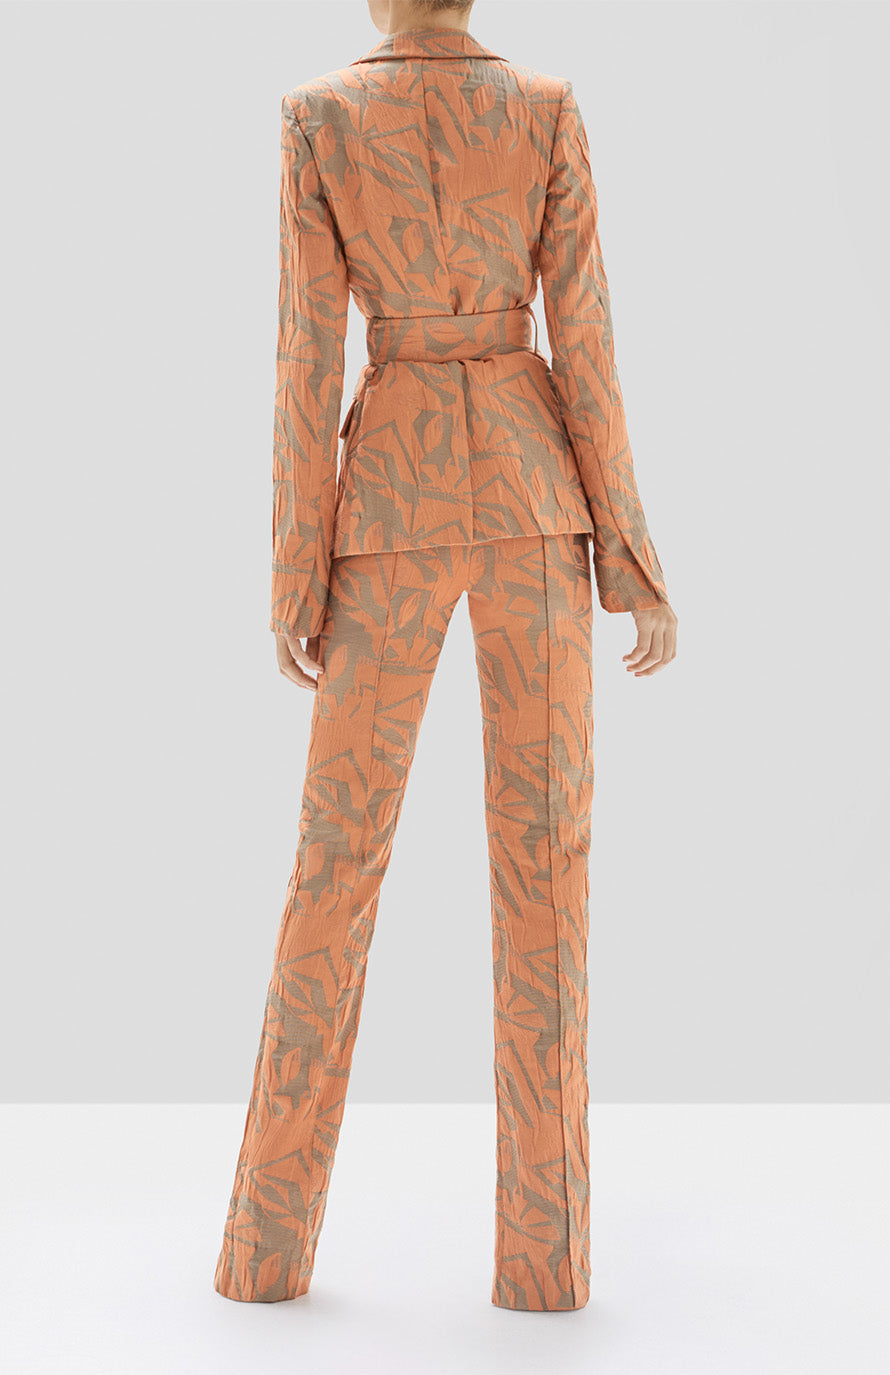 Alexis Malda Jacket and Attila Pant in Amber from the Pre Spring 2020 Collection - Rear View